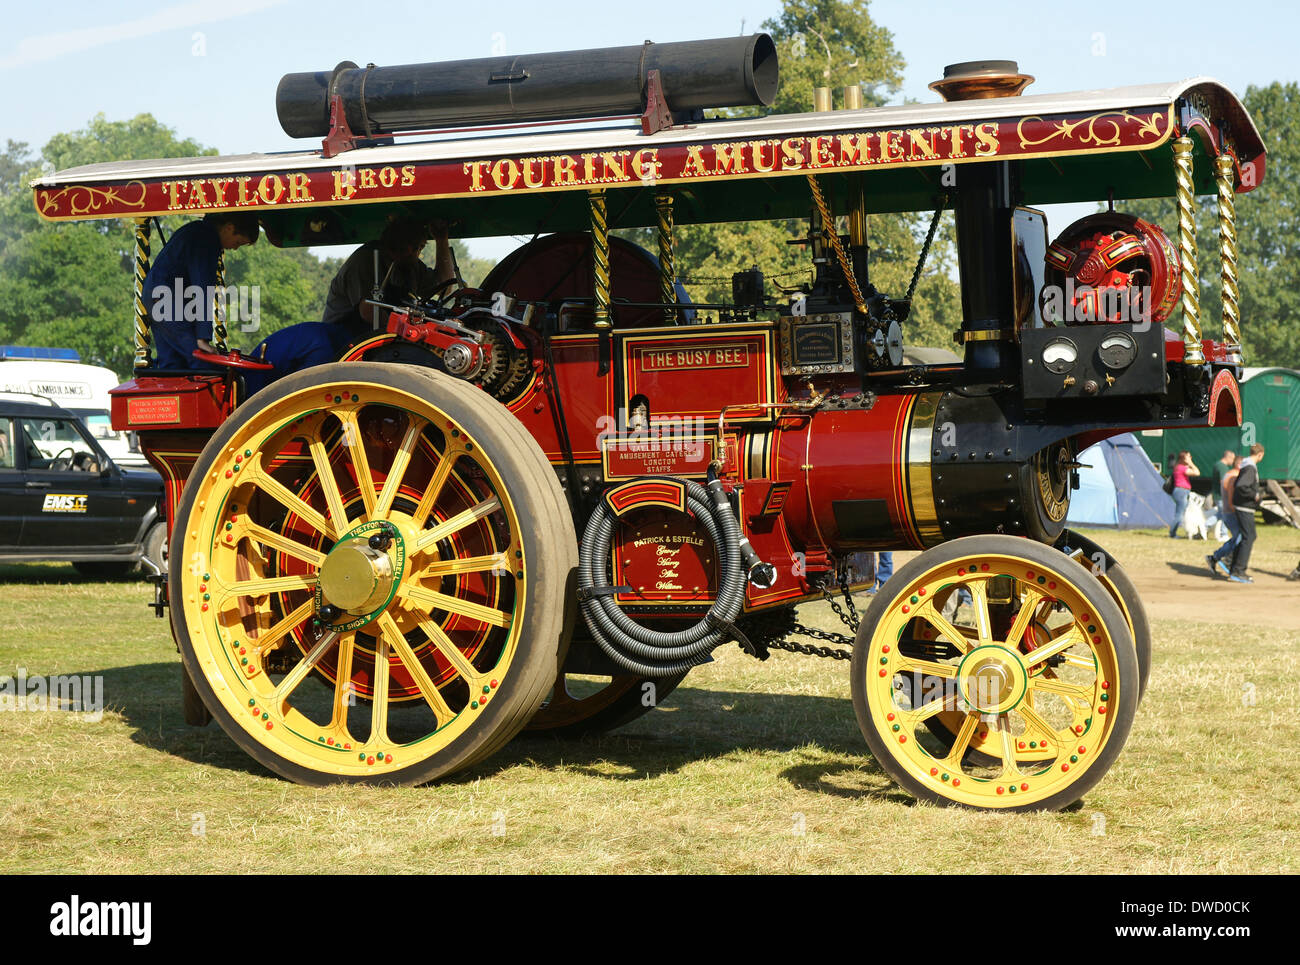 The Busy Bee Burrell of Thetford 1914 steam showmans road locomotive traction engine AO6262 3555 - Stock Image